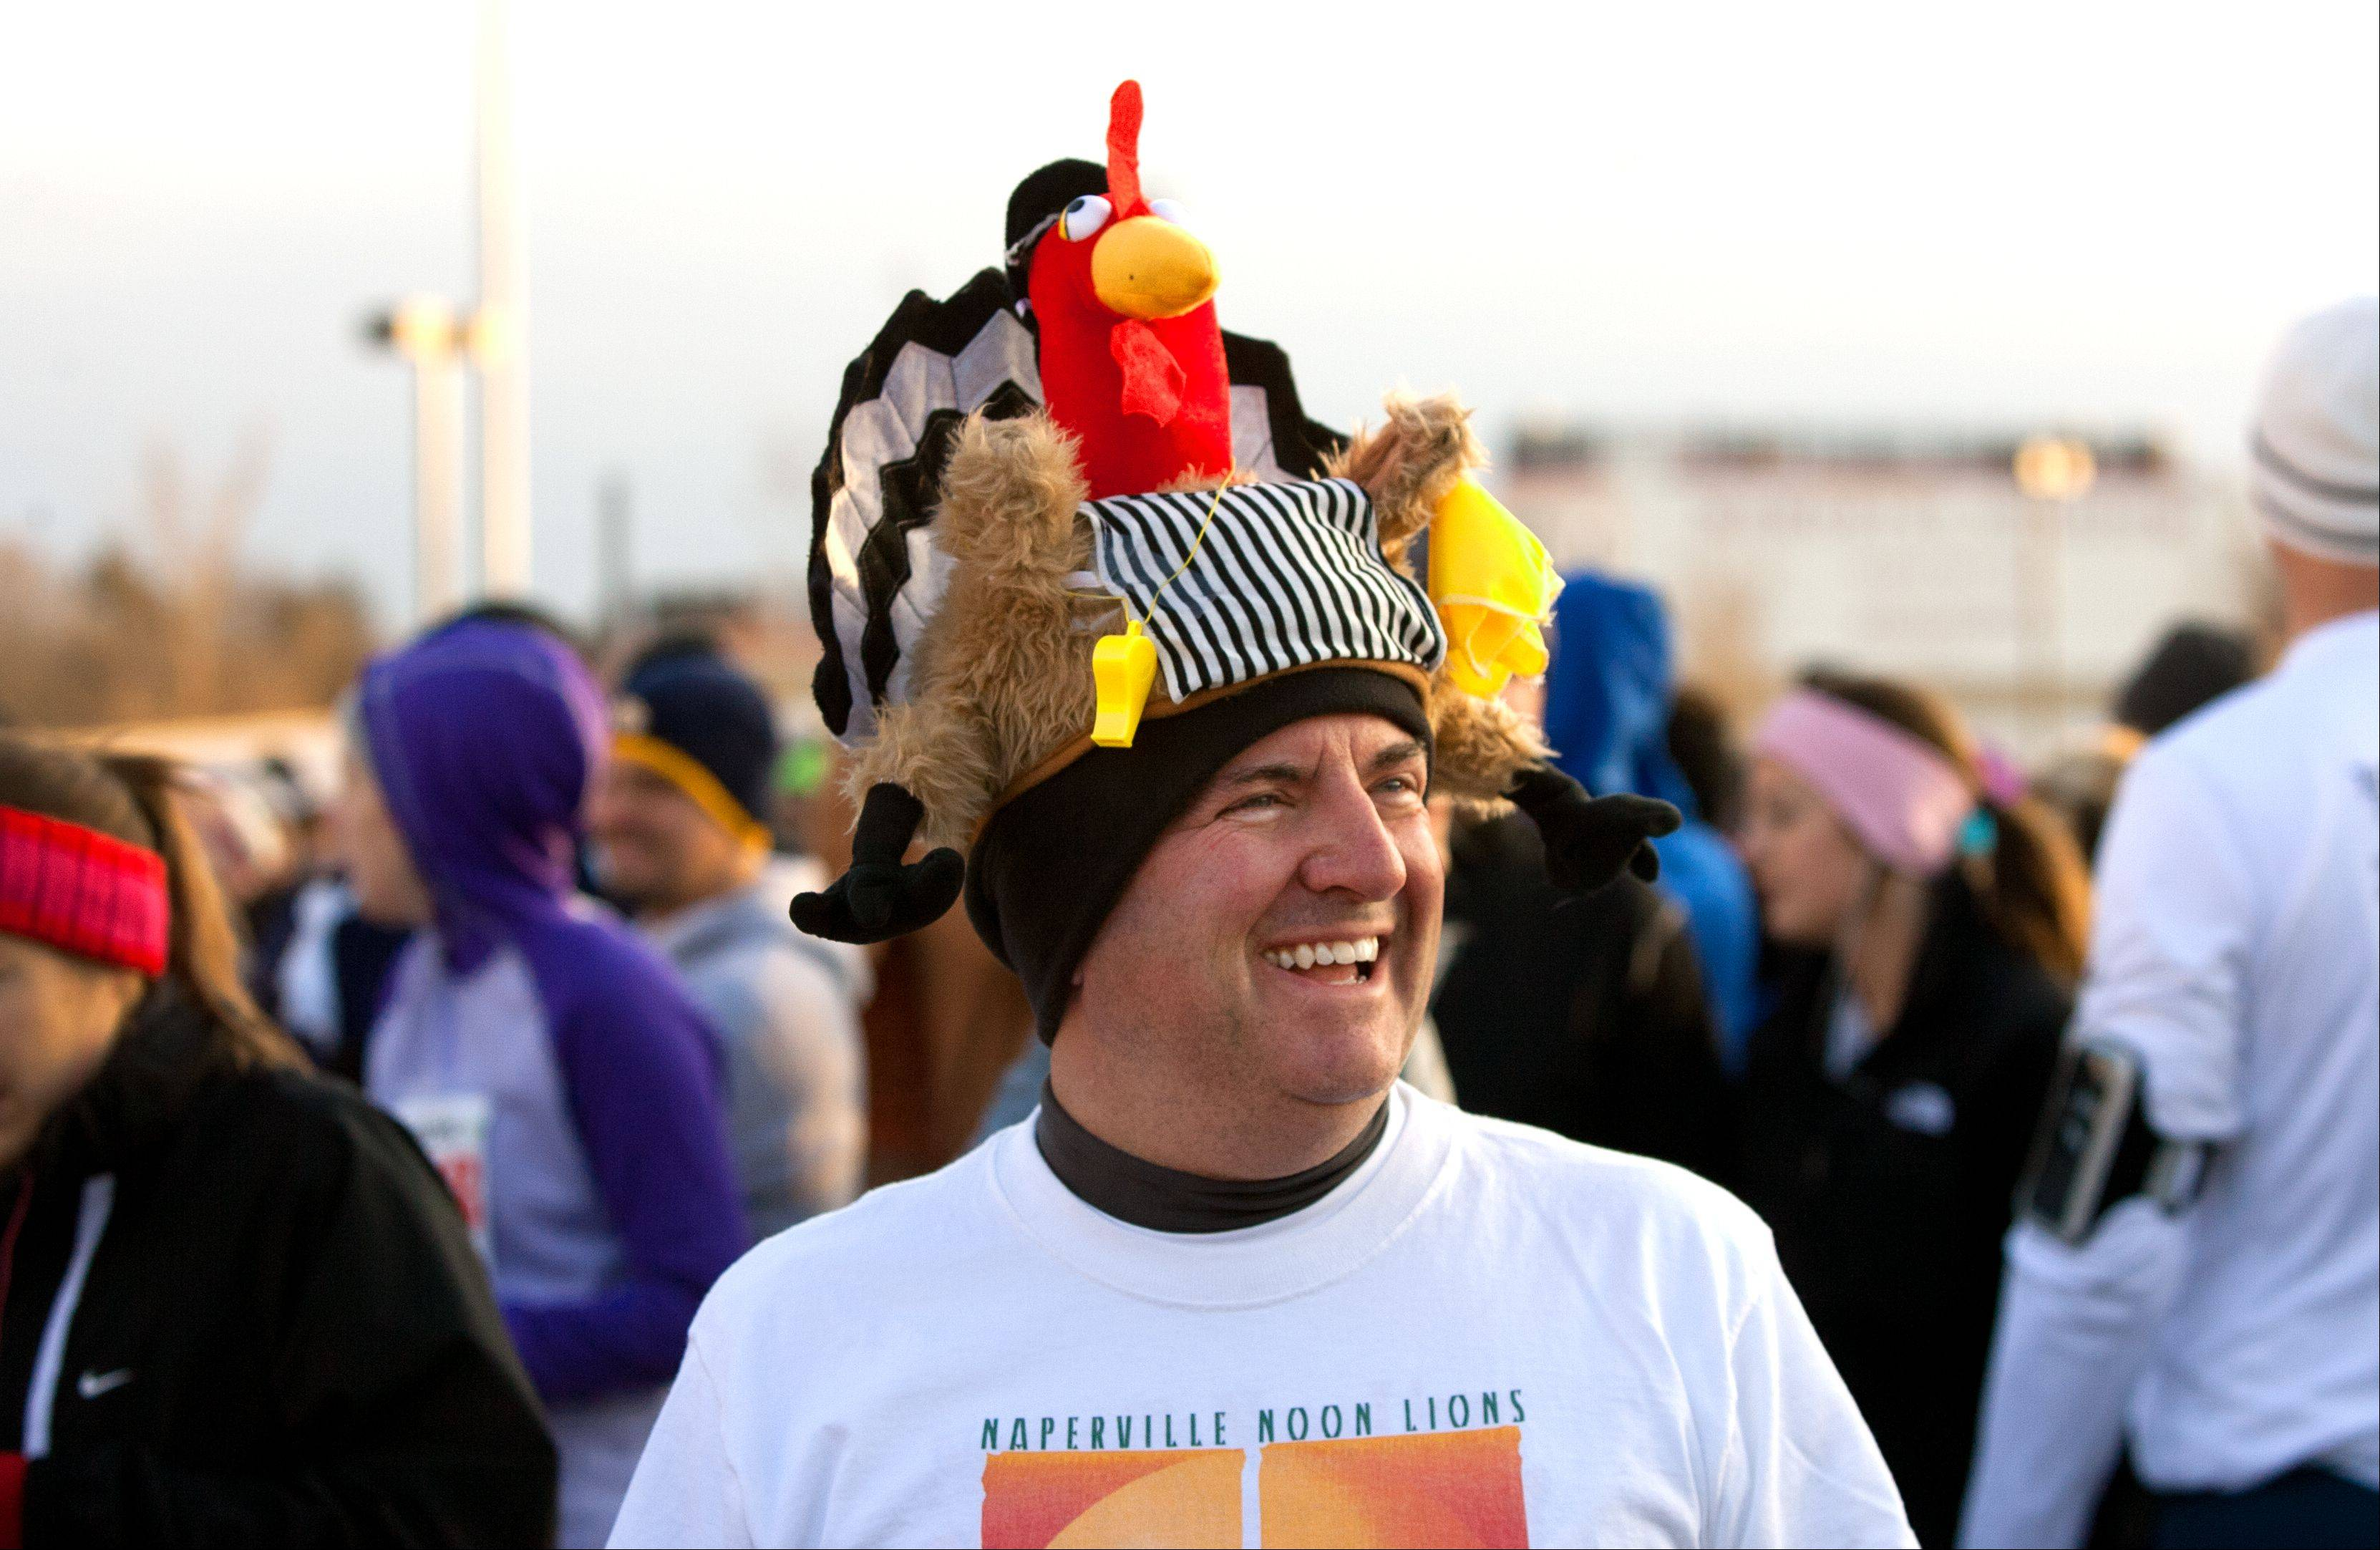 Naperville's Mike Wolfsmith participated in the 16th annual Naperville Noon Lions 5K Turkey Trot Thursday morning.